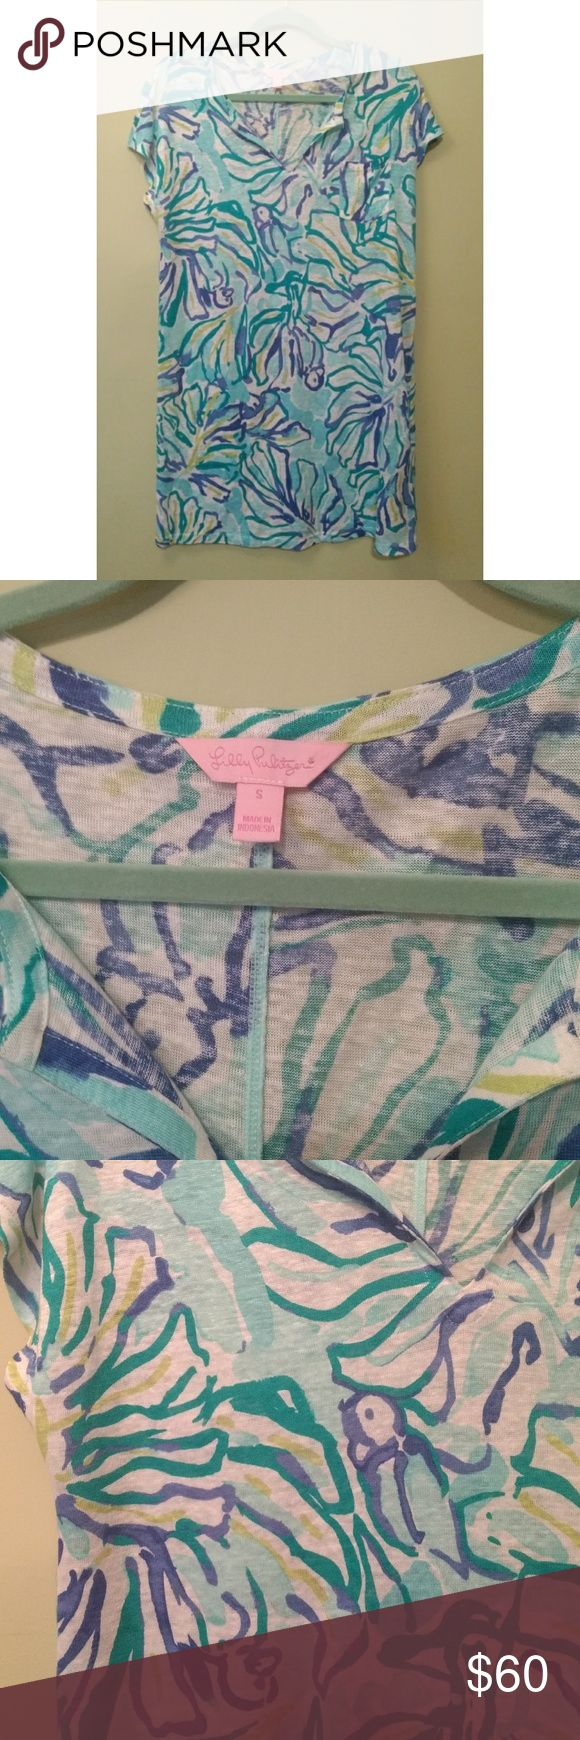 """Lilly Pulitzer Duval Linen Dress Pool Blue Dress S Excellent condition, comes as shown, worn once.   The Duval Dress is the ultimate t-shirt dress. This straight fit dress is perfect for hanging by the pool, beach, or just at home. Put on some gold flats, stash some lip gloss in the pocket and you are good to go! Printed Cap Sleeved T-Shirt Dress With Notch Neckline And Pocket Detail. 20"""" From Natural Waist To Hem. 100% Linen Knit- Printed (100% Linen). Hand Wash Cold. Imported. Style #…"""